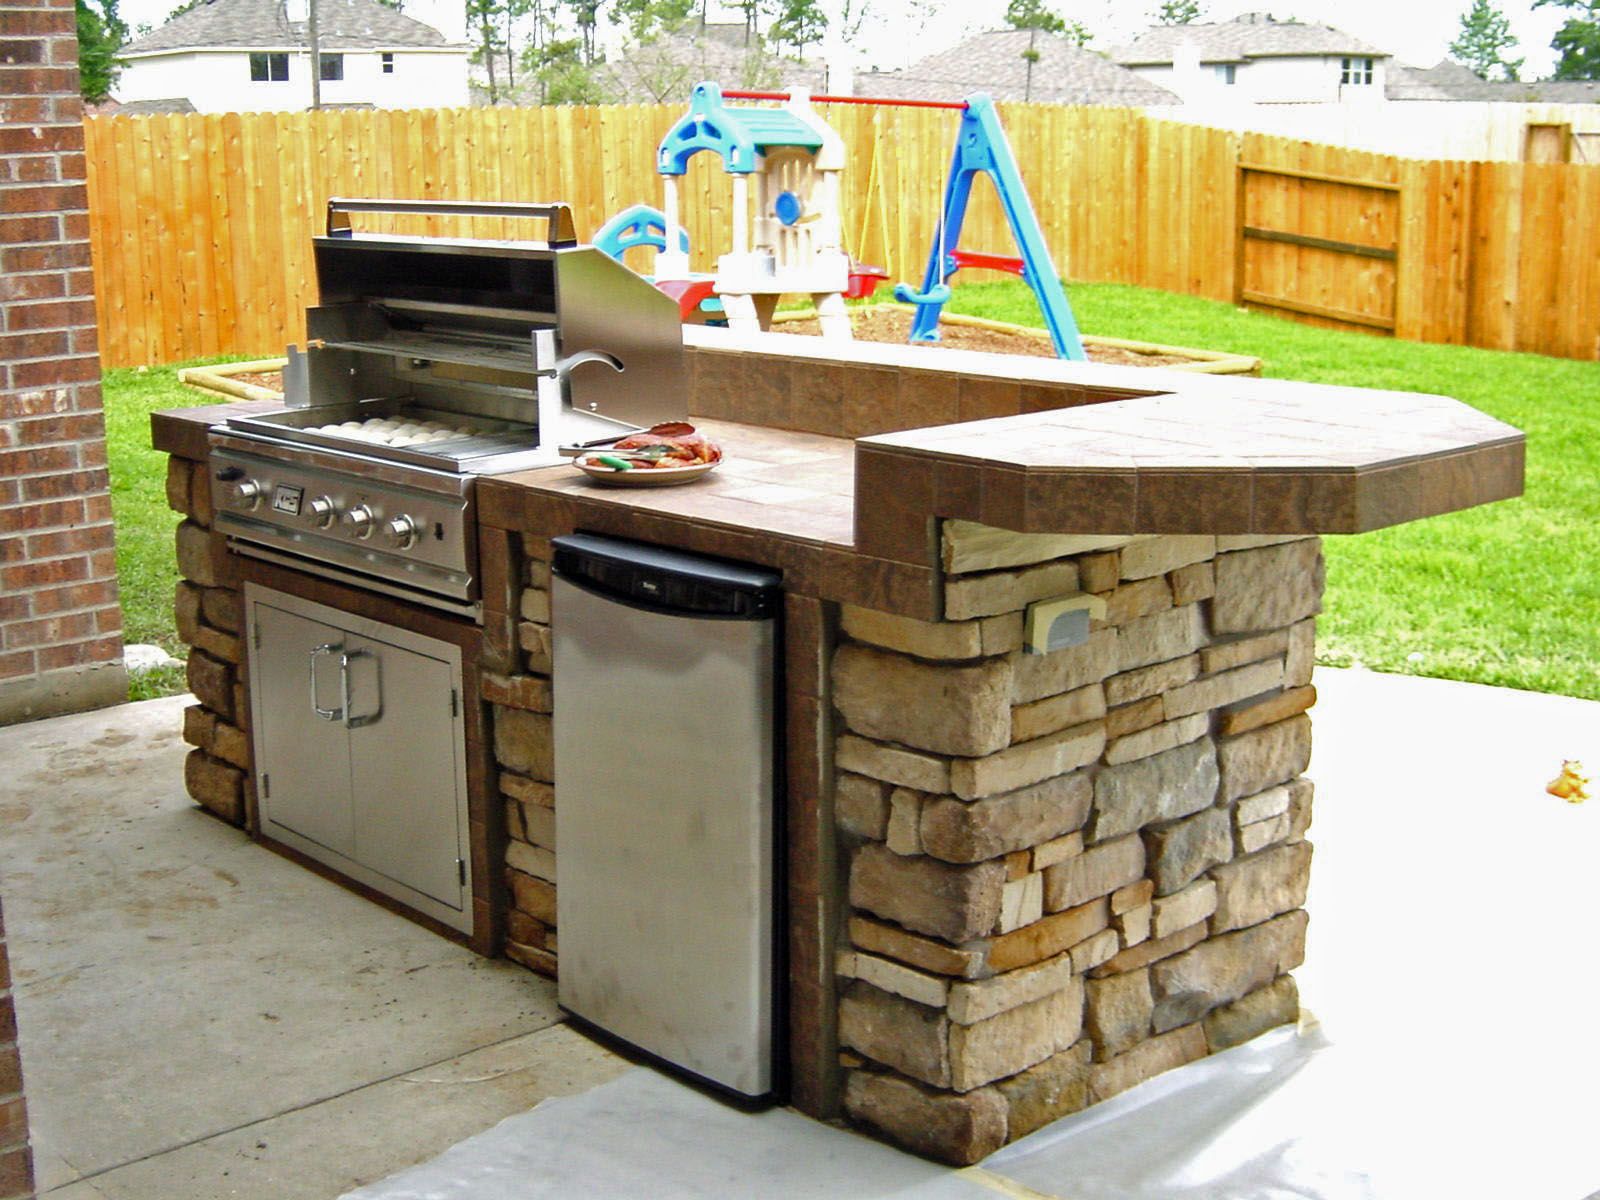 17 best ideas about small outdoor kitchens on pinterest outdoor kitchens backyard kitchen and outdoor kitchen patio cool outdoor kitchen designs - Outdoor Grill Design Ideas